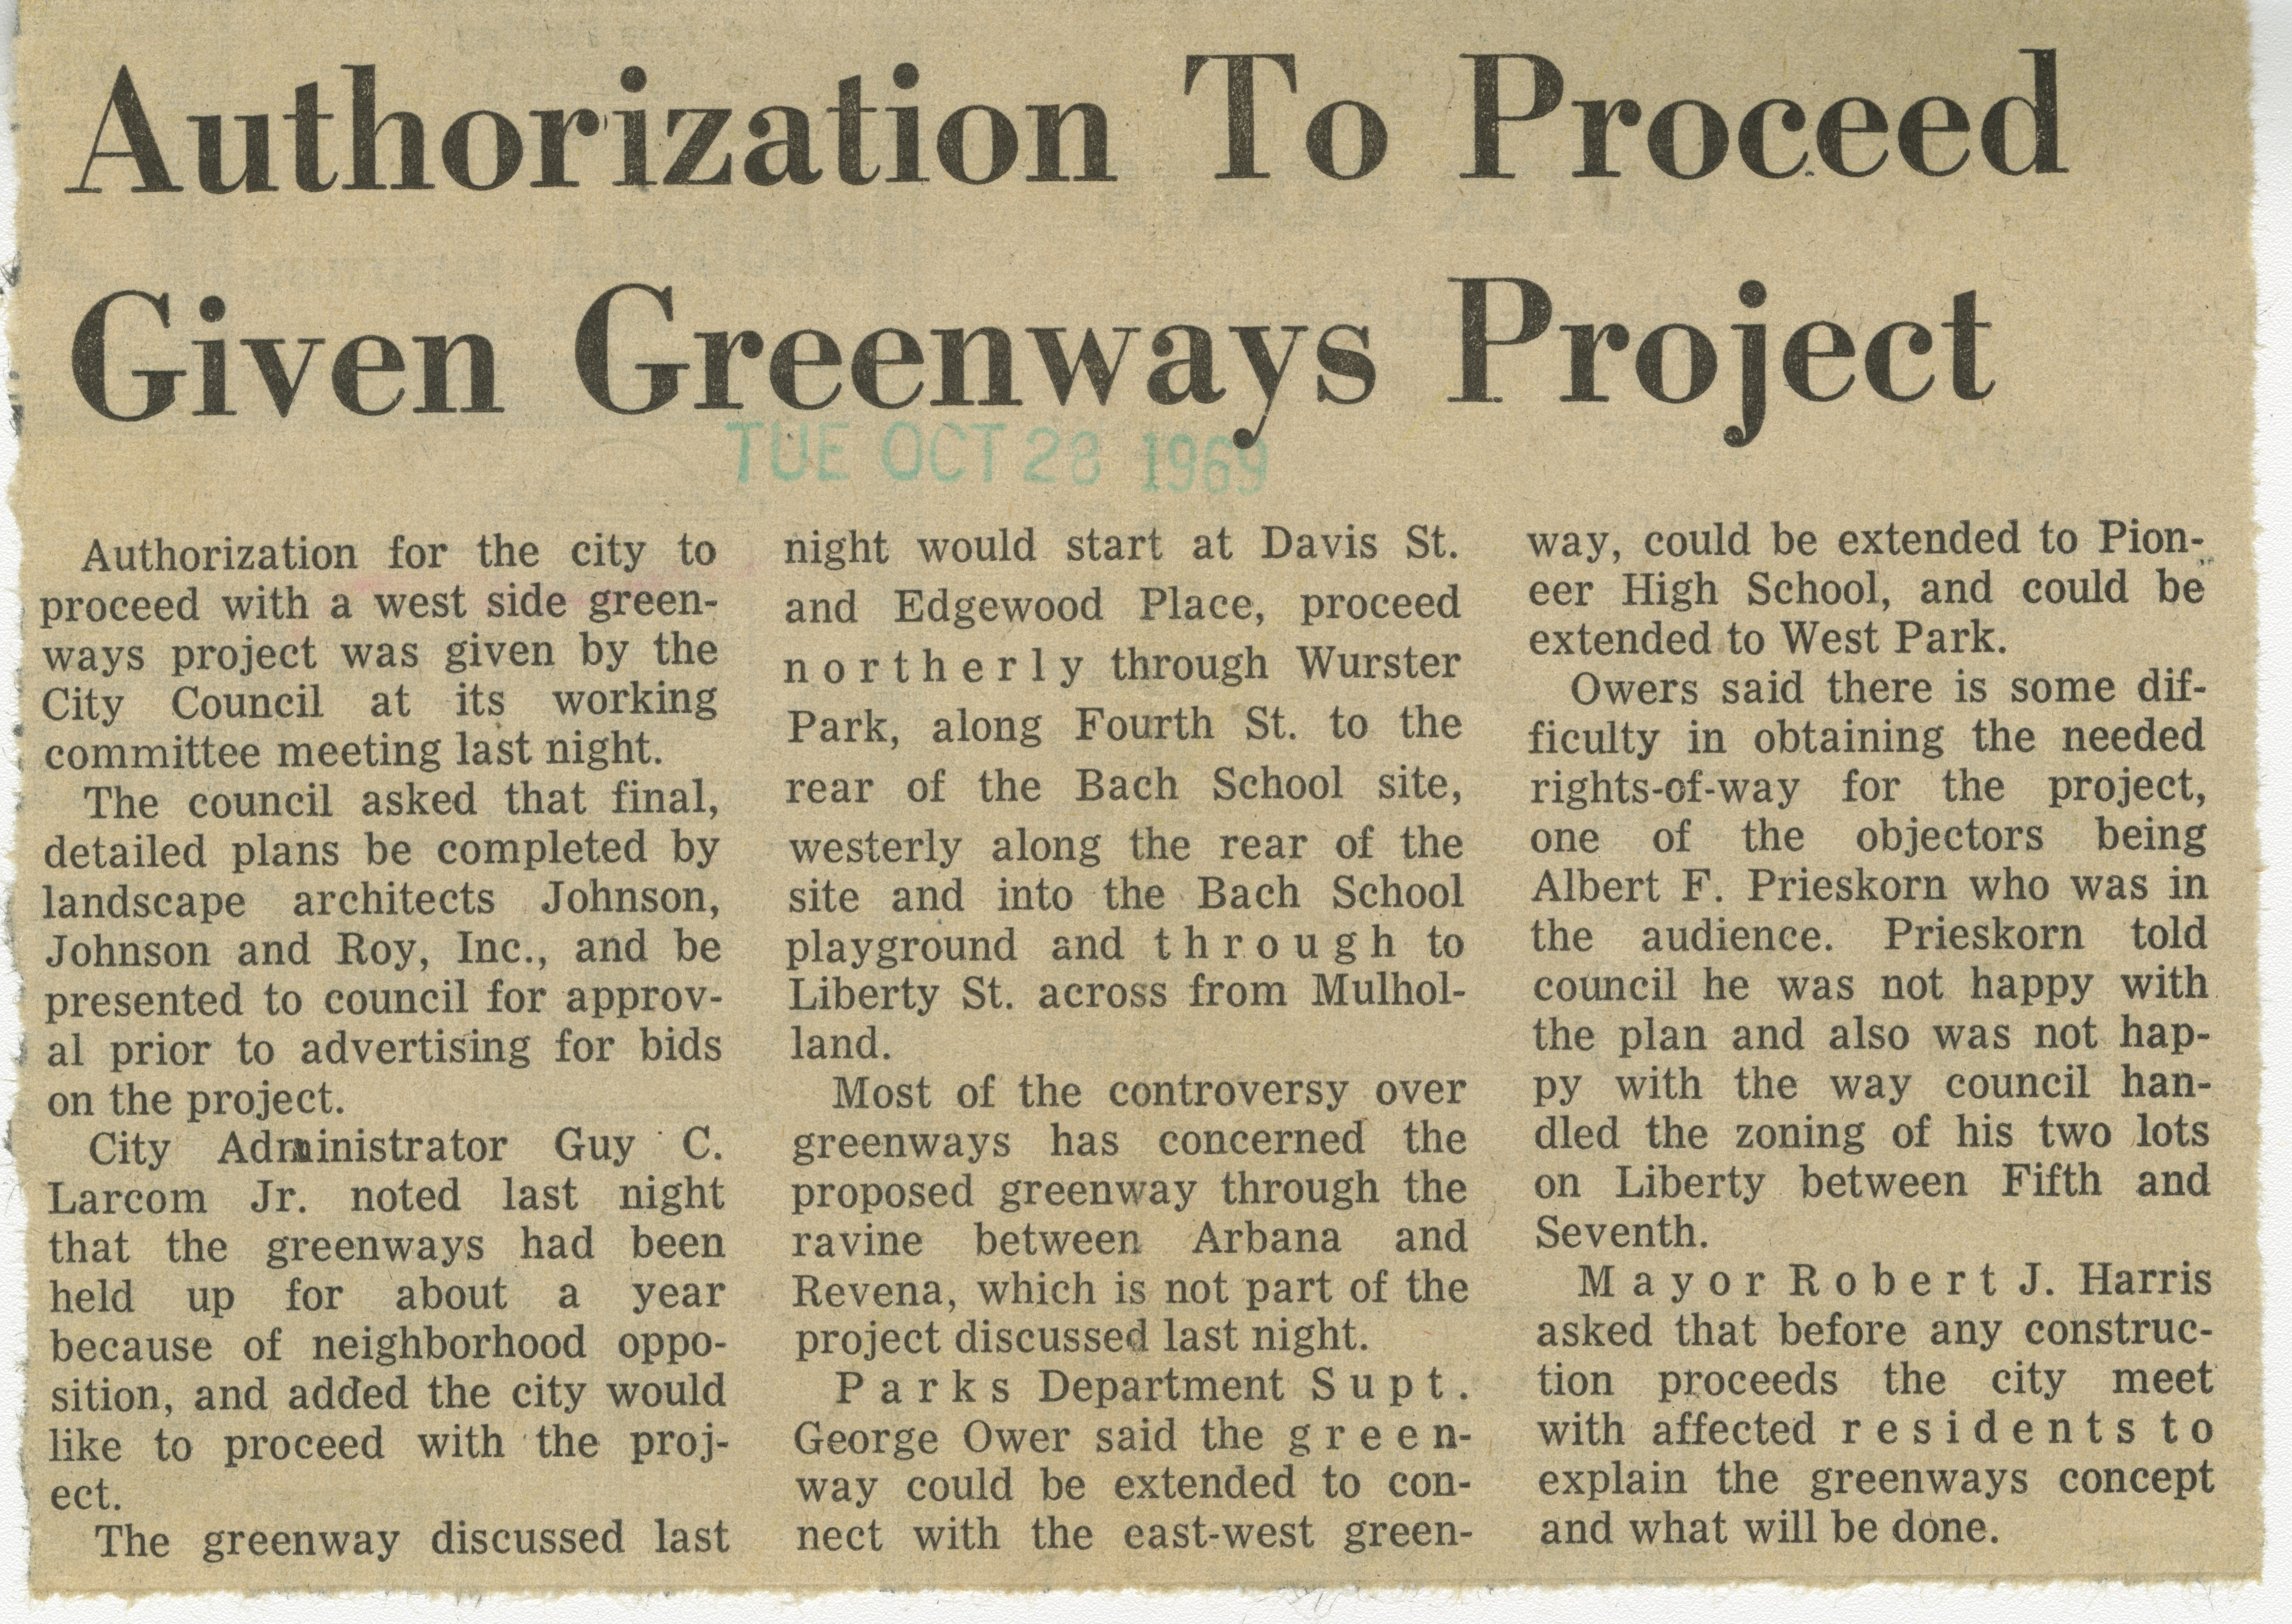 Authorization To Proceed Given Greenways Project image